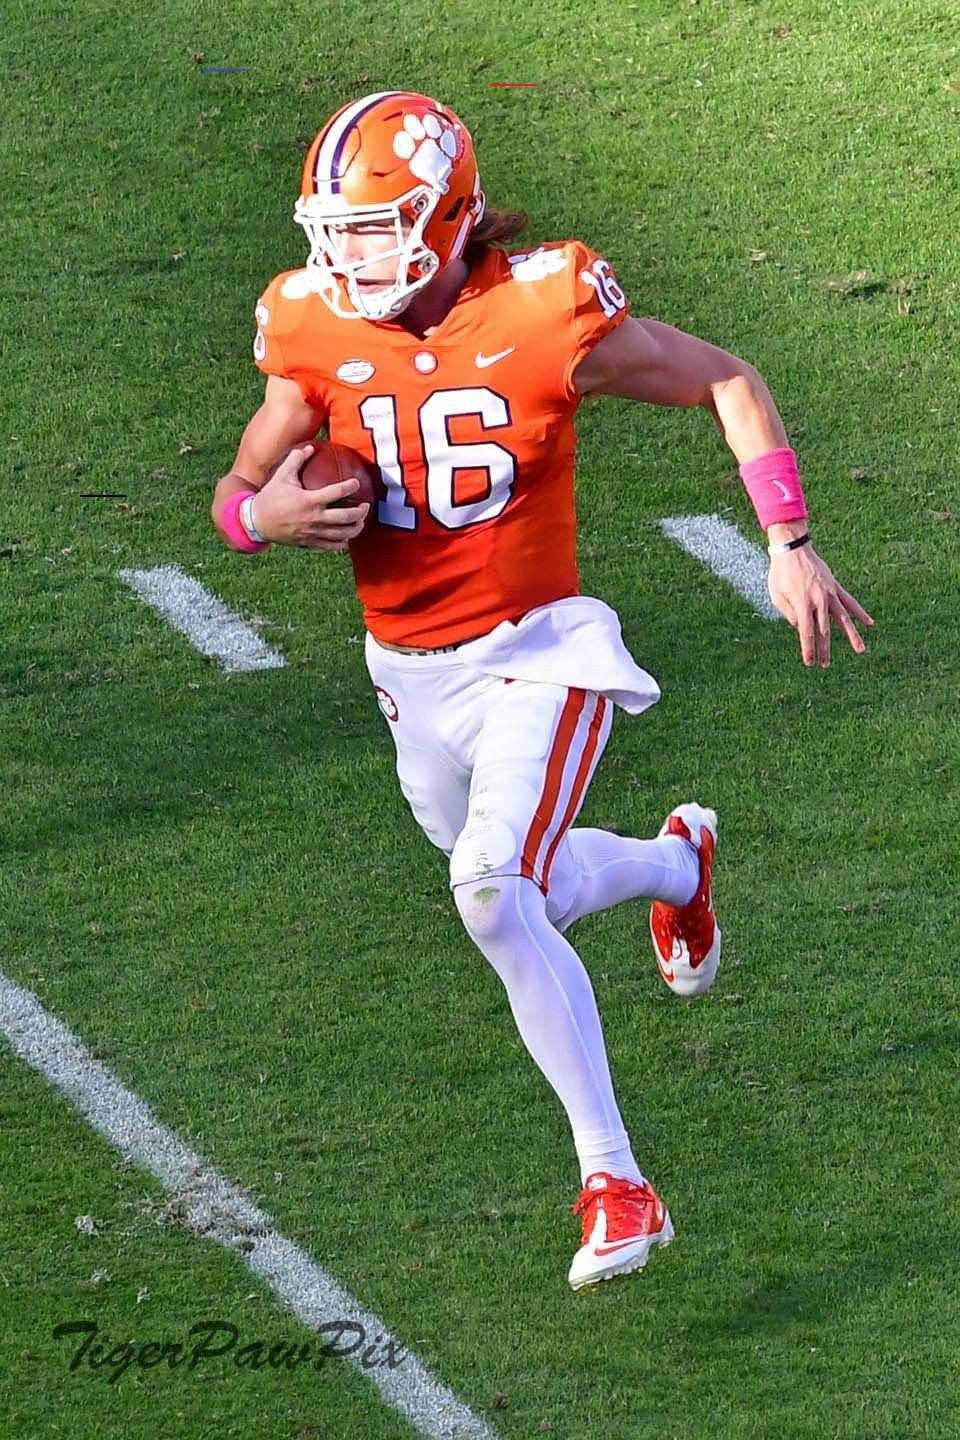 Pin by a l y s s a 🦋 on Clemson football in 2020 Clemson